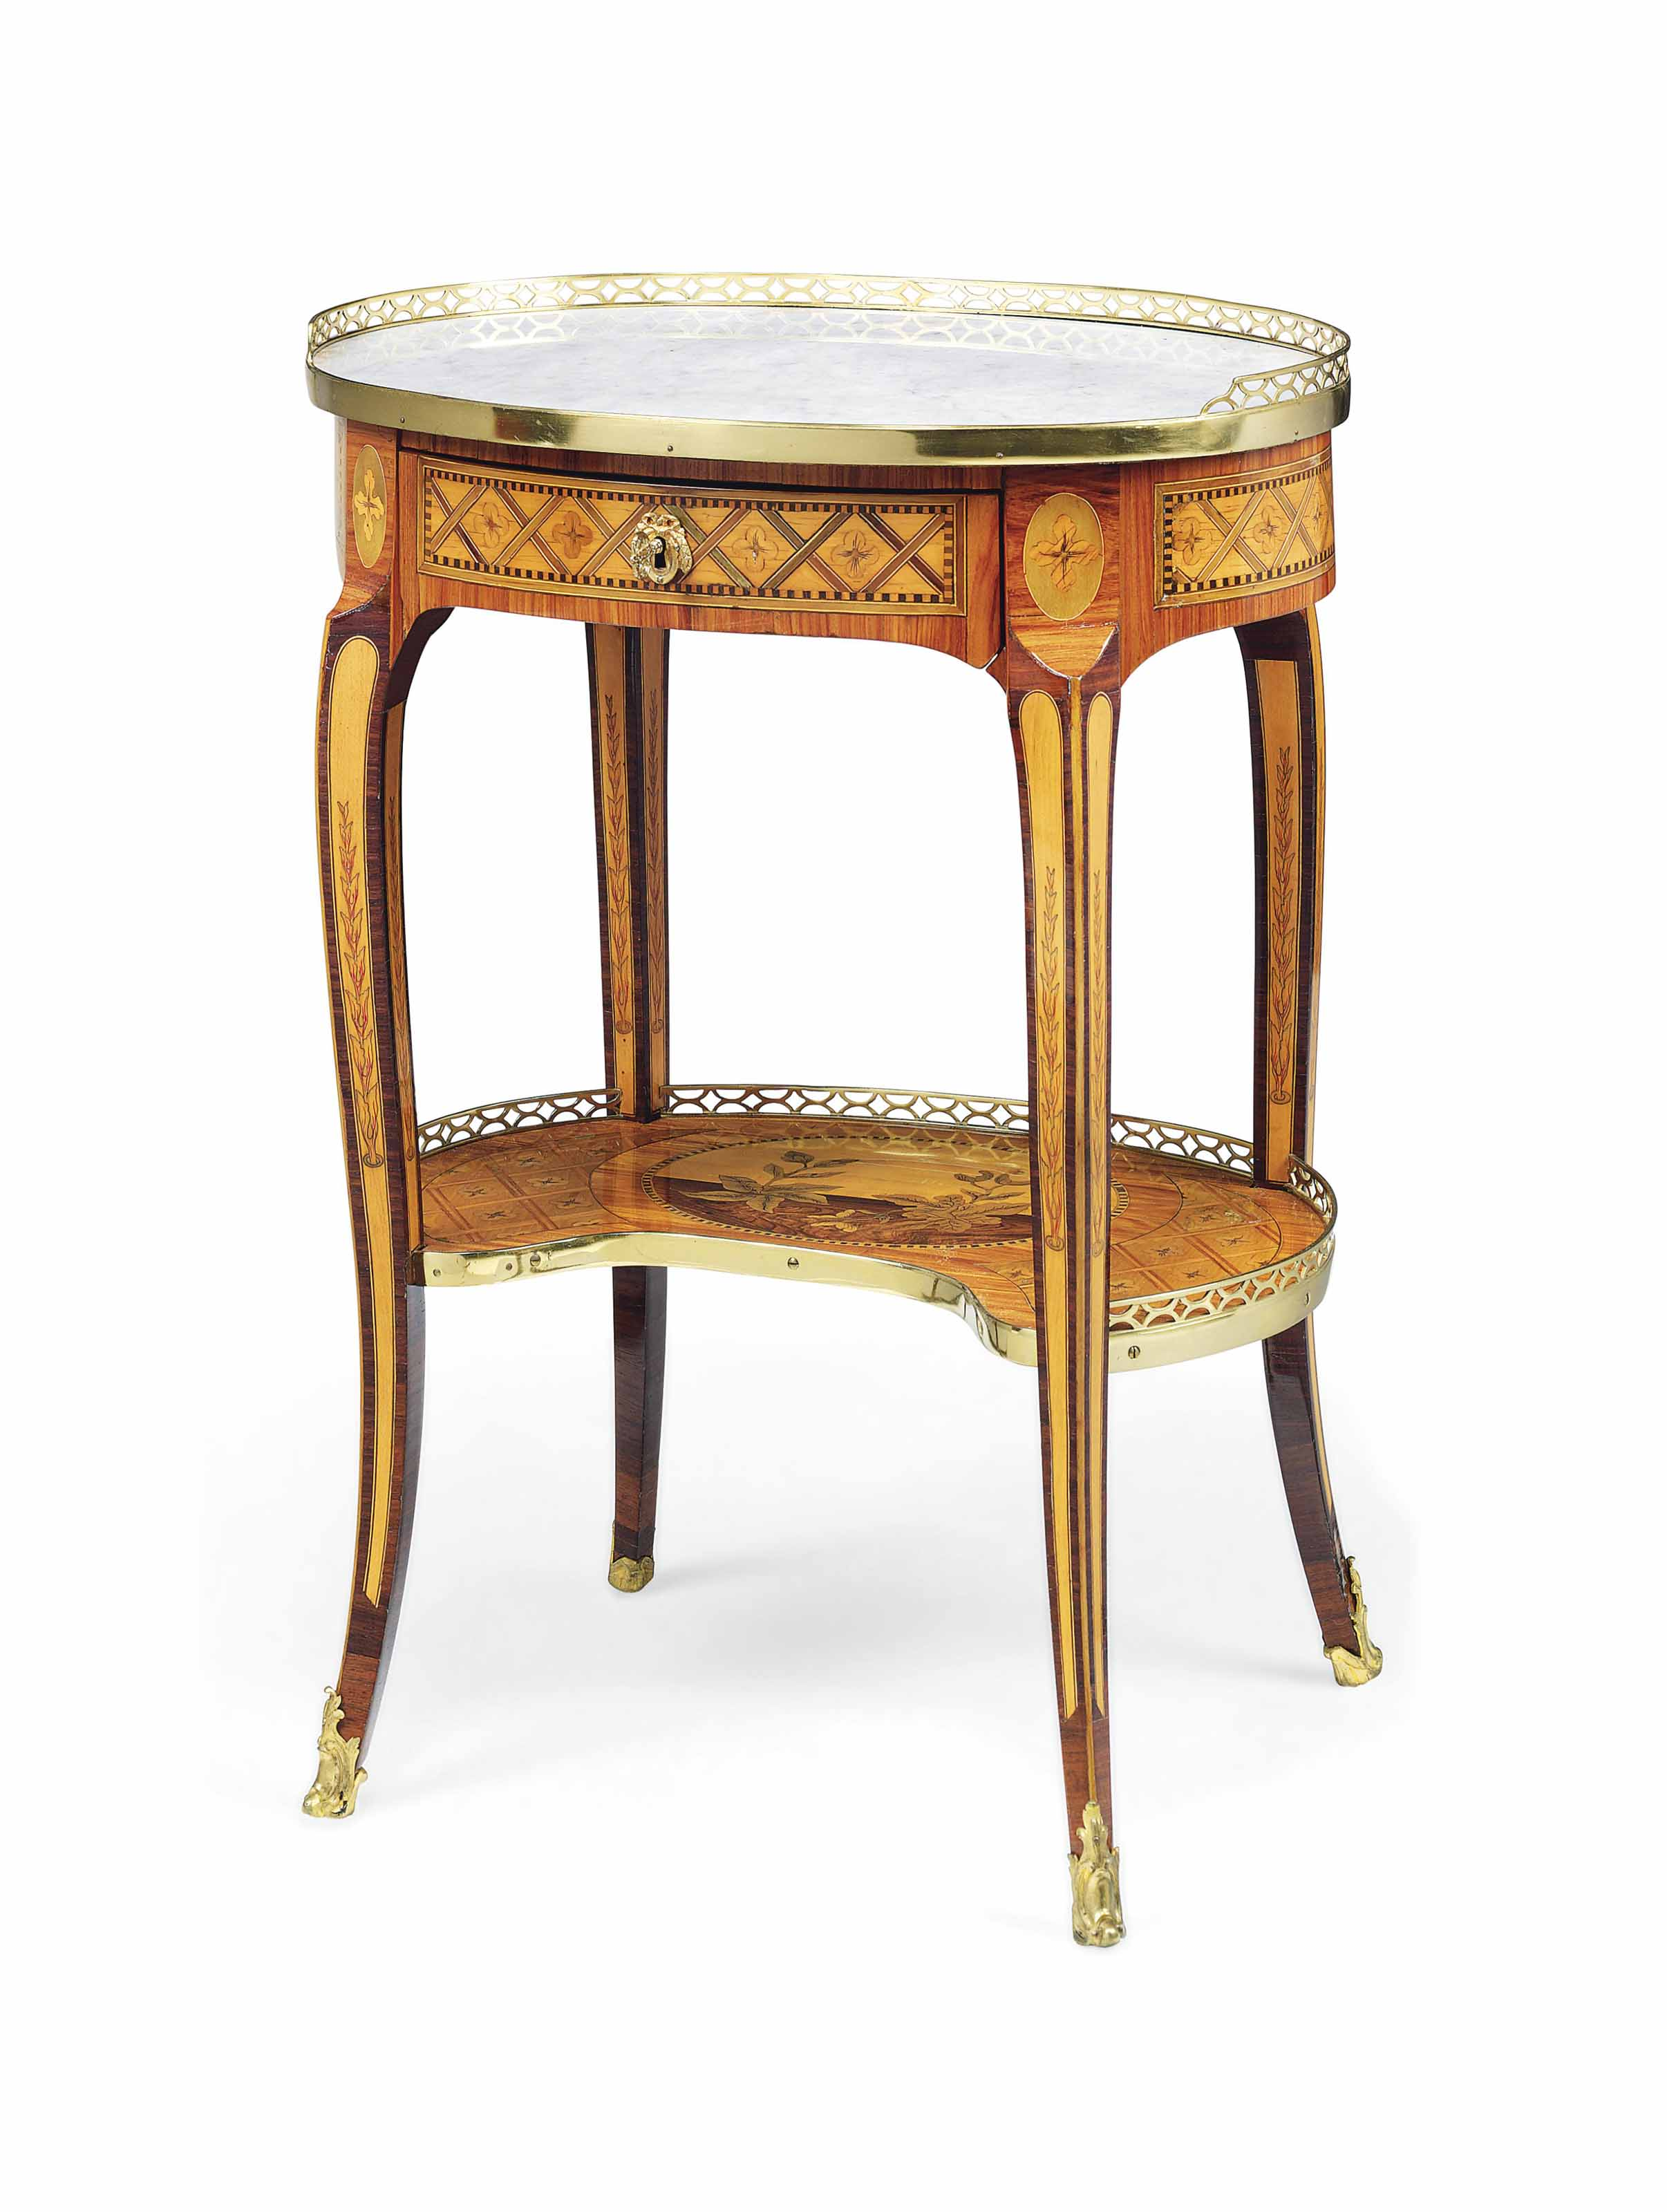 A LOUIS XV GILT-LACQUERED-BRASS MOUNTED TULIPWOOD, MARQUETRY AND PARQUETRY TABLE A ECRIRE